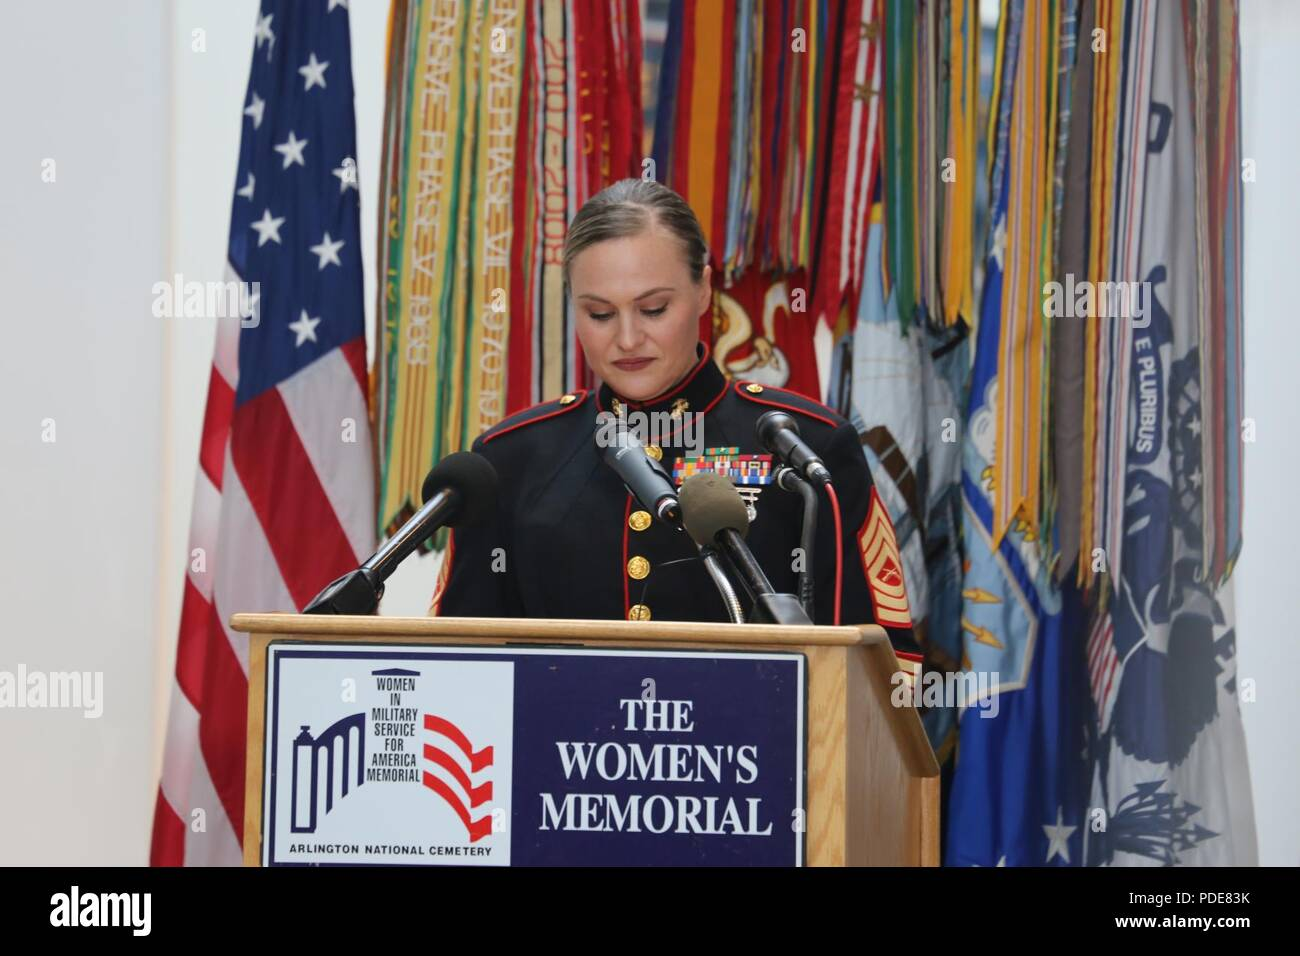 Master Sgt. Meghann Viggiani delivers a speech on behalf of the five servicewomen recognized at the Women in the Military Wreath Laying Ceremony, sponsored by the Congressional Caucus for Women's Issues, Arlington, Virginia, May 17, 2018. Viggiani, recognized for her courage and professional achievements, is the logistics chief at Marine Barracks Washington, and was the Marine Corps' outstanding senior female noncommissioned officer at the event. The annual ceremony, which was held at the Women in Military Service for America Memorial, honors women across all branches of military services. - Stock Image